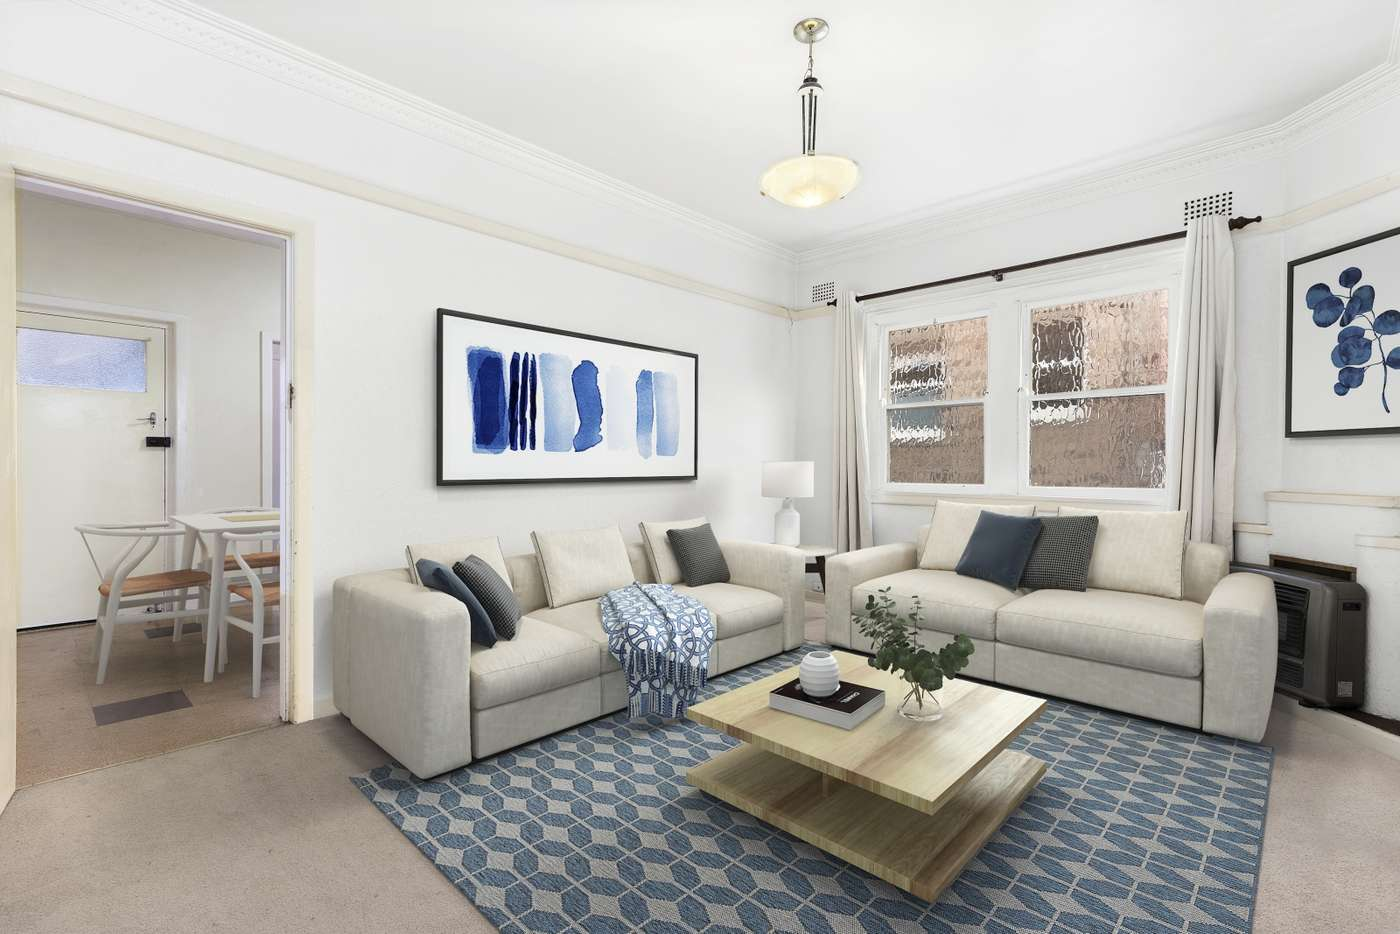 Main view of Homely apartment listing, 2/4 Bradly Avenue, Kirribilli, NSW 2061